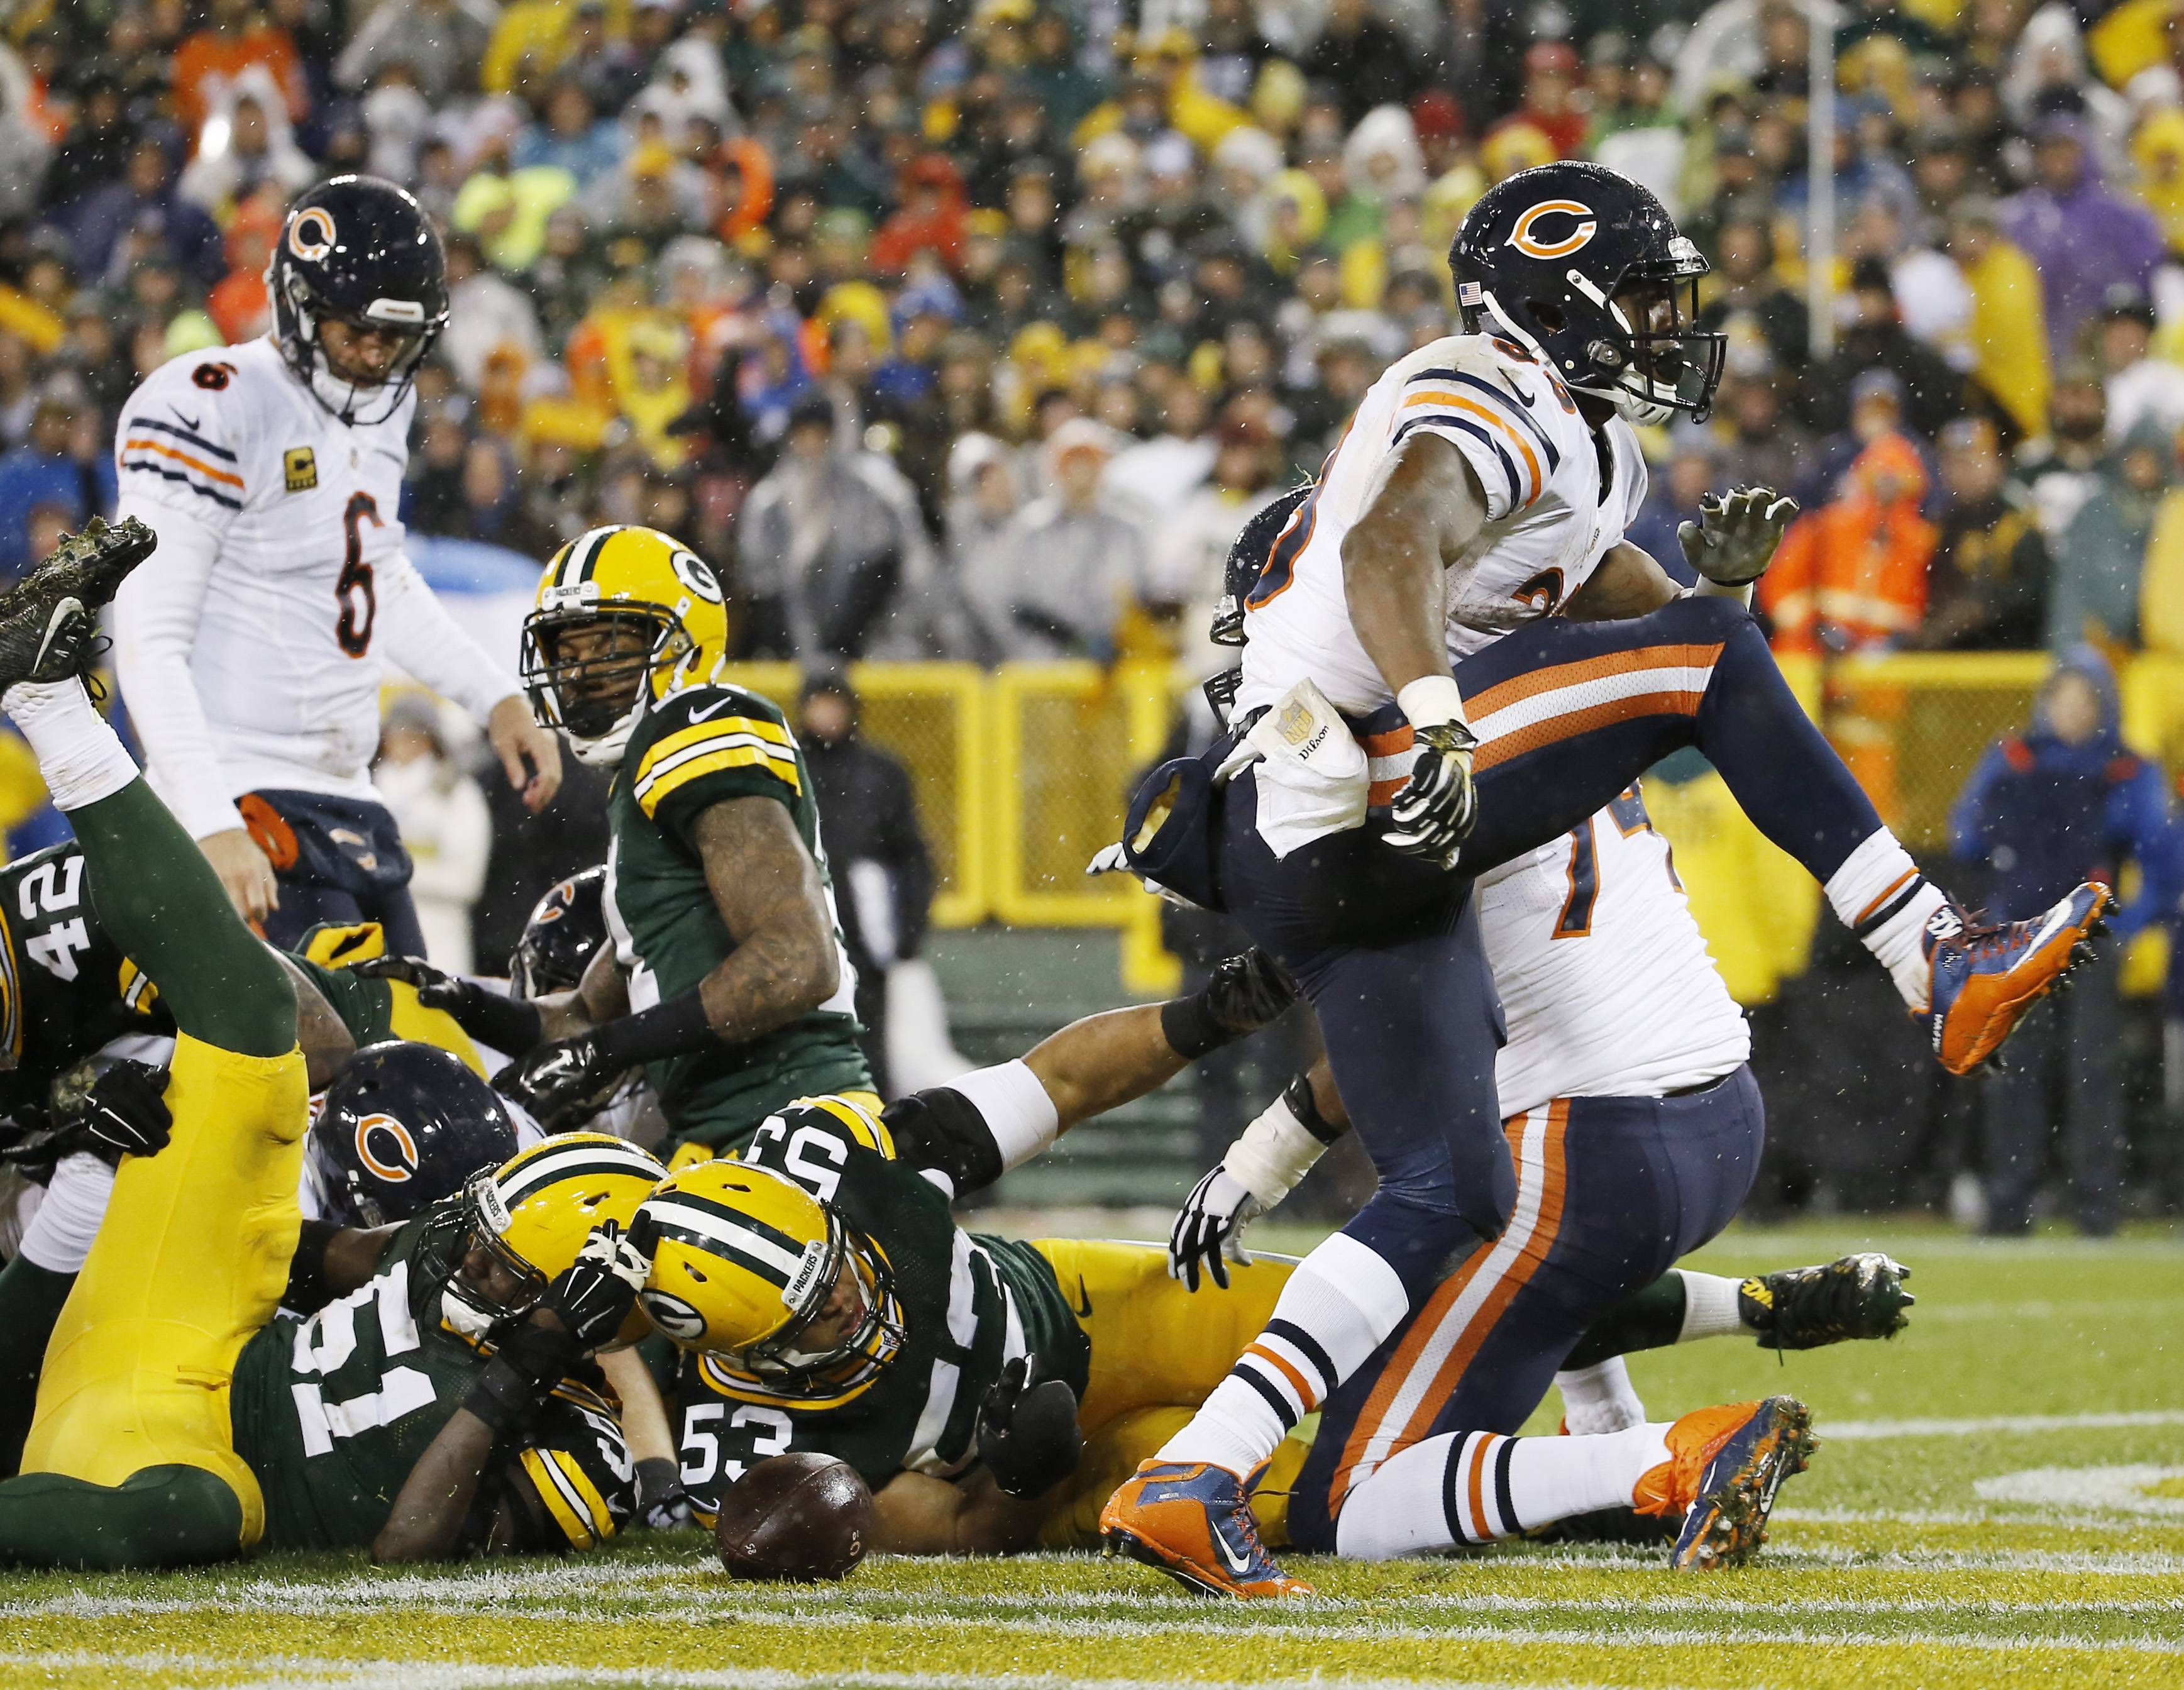 Chicago Bears' Jeremy Langford celebrates his touchdown run during the first half of an NFL football game against the Green Bay Packers Thursday, Nov. 26, 2015, in Green Bay, Wis.